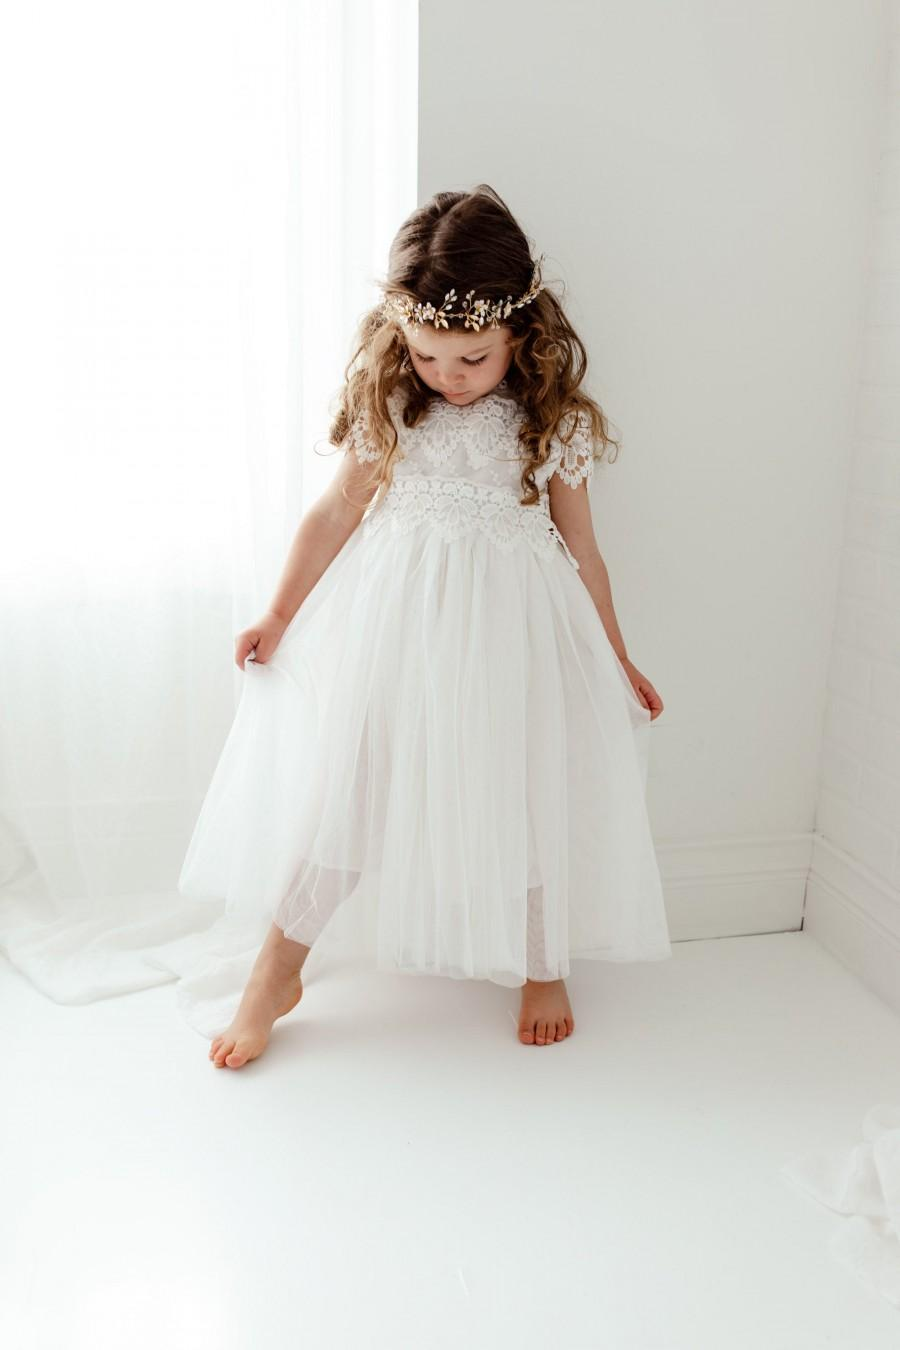 Wedding - Boho White Lace Flower Girl Dress, Romantic Toddler Tulle Wedding Gown, Long Sleeve Rustic Crochet Bohemian